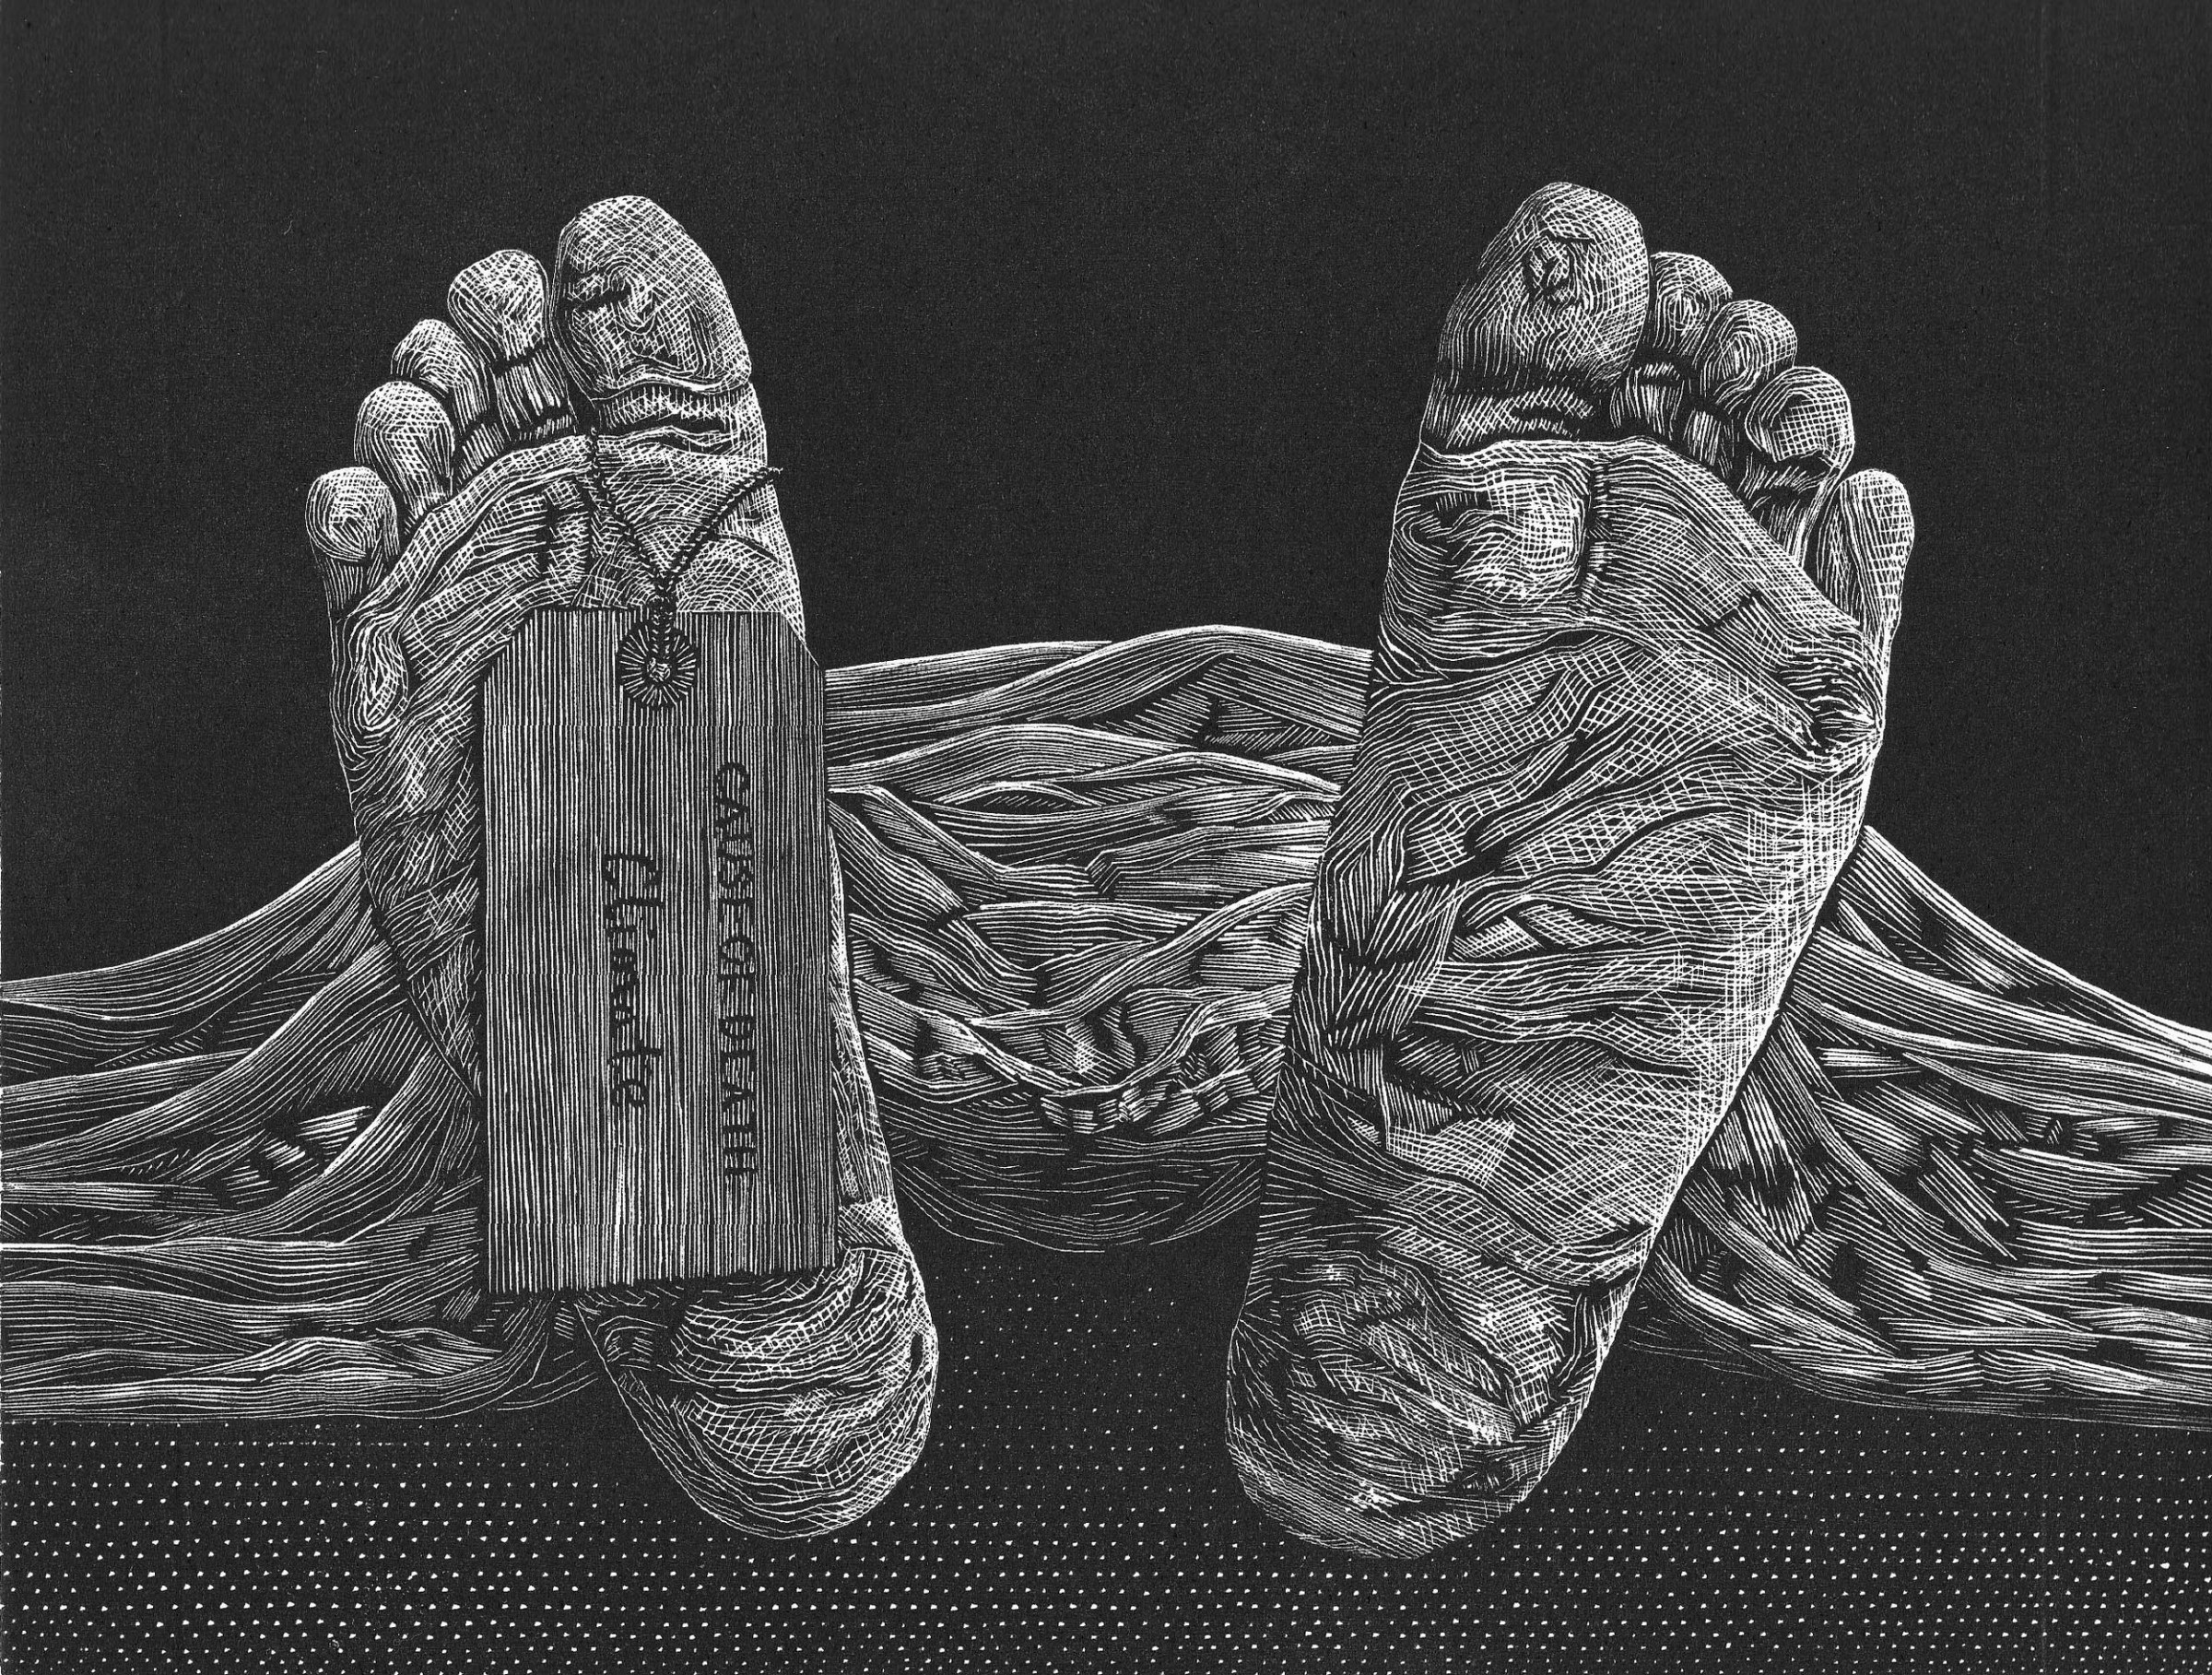 "<span class=""link fancybox-details-link""><a href=""/exhibitions/18/works/image_standalone1044/"">View Detail Page</a></span><p>David Robertson</p><p>Mass Extinction</p><p>wood engraving</p><p>34 x 35cm</p><p>£190 framed</p><p>£140 unframed</p>"